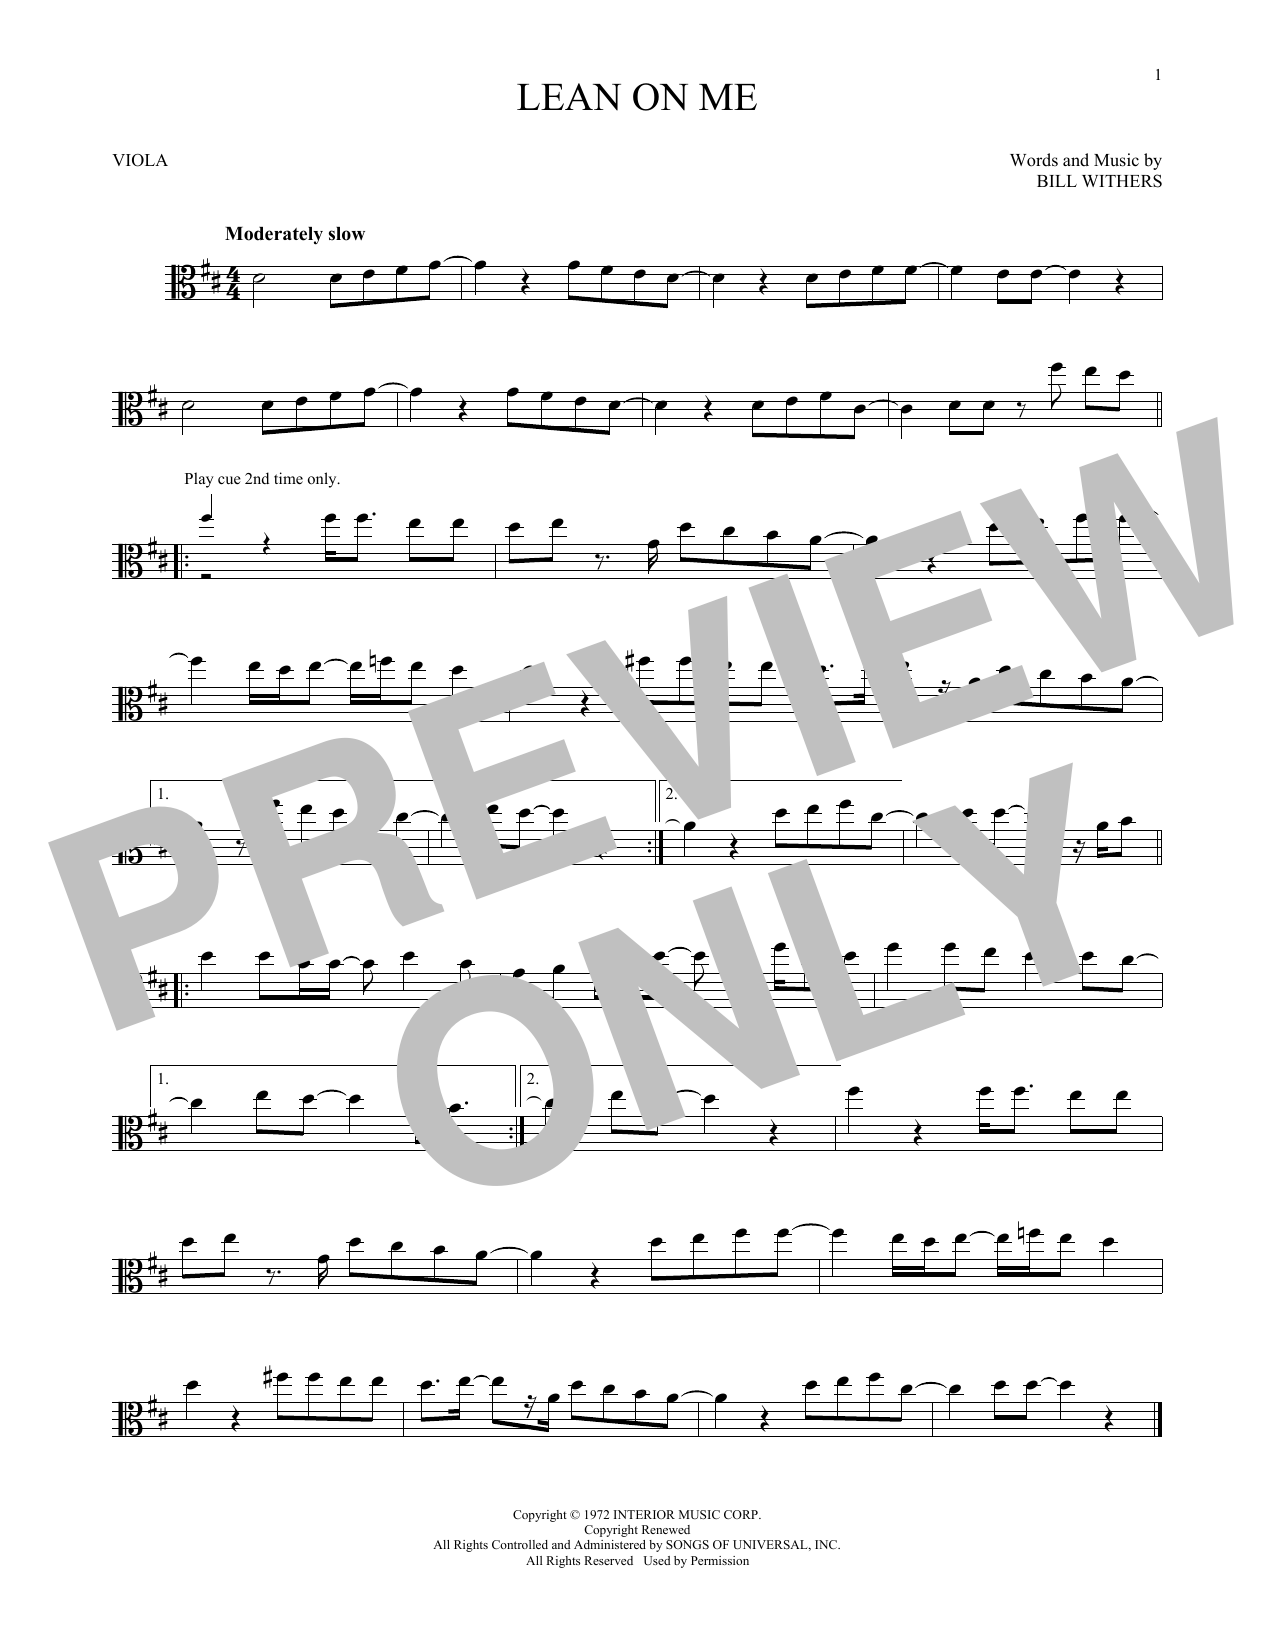 Bill Withers Lean On Me Sheet Music Notes Chords Printable